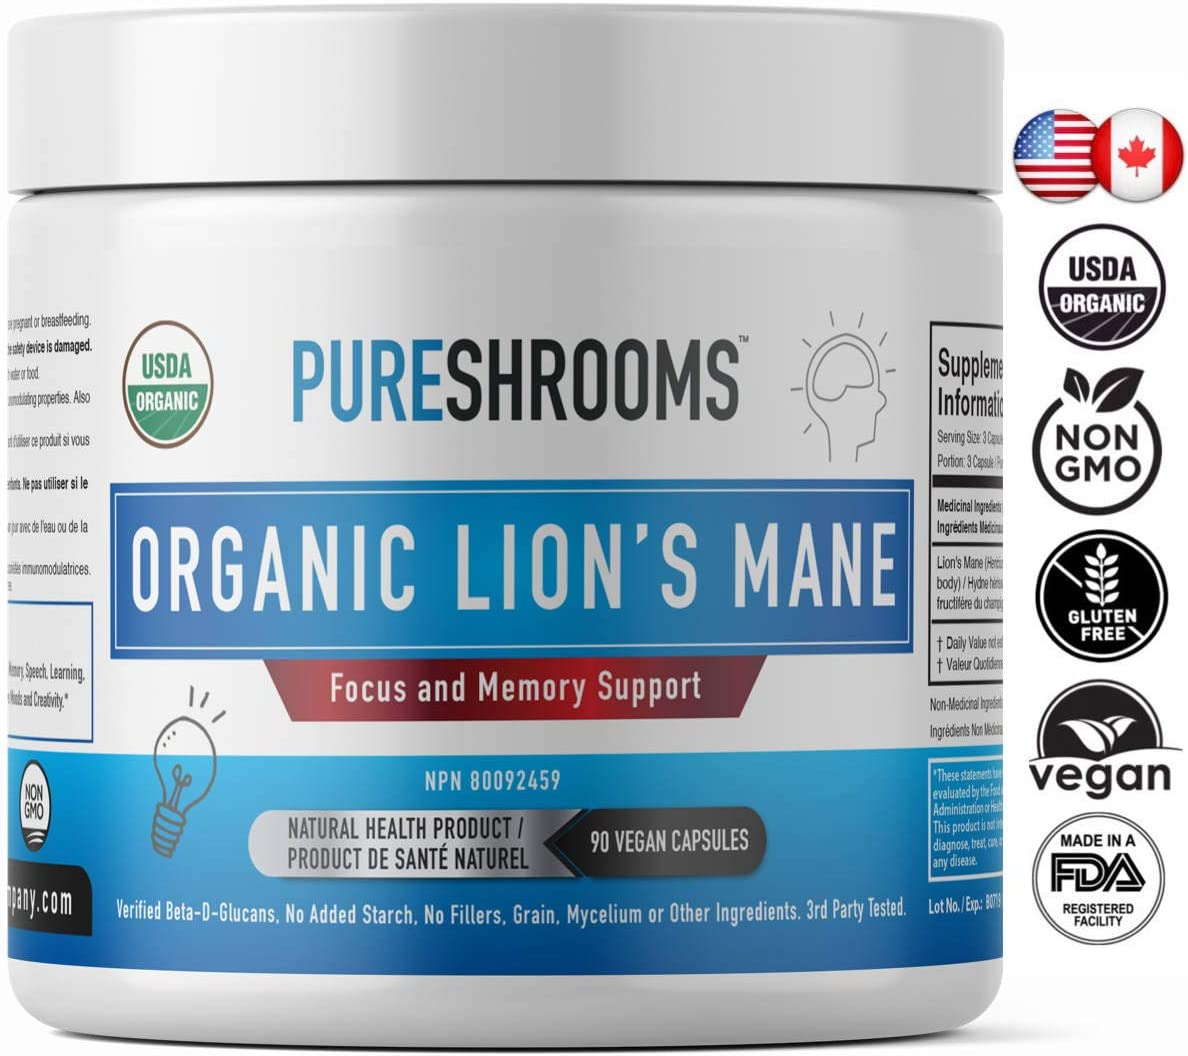 Pure Shrooms Organic Lion s Mane Mushrooms – Strongest 1600mg Per Serving, 90 Capsules – Memory, Focus Nerve Health. Beta-D-Glucans 30 , Organic, No Fillers, No Preservatives No Additives